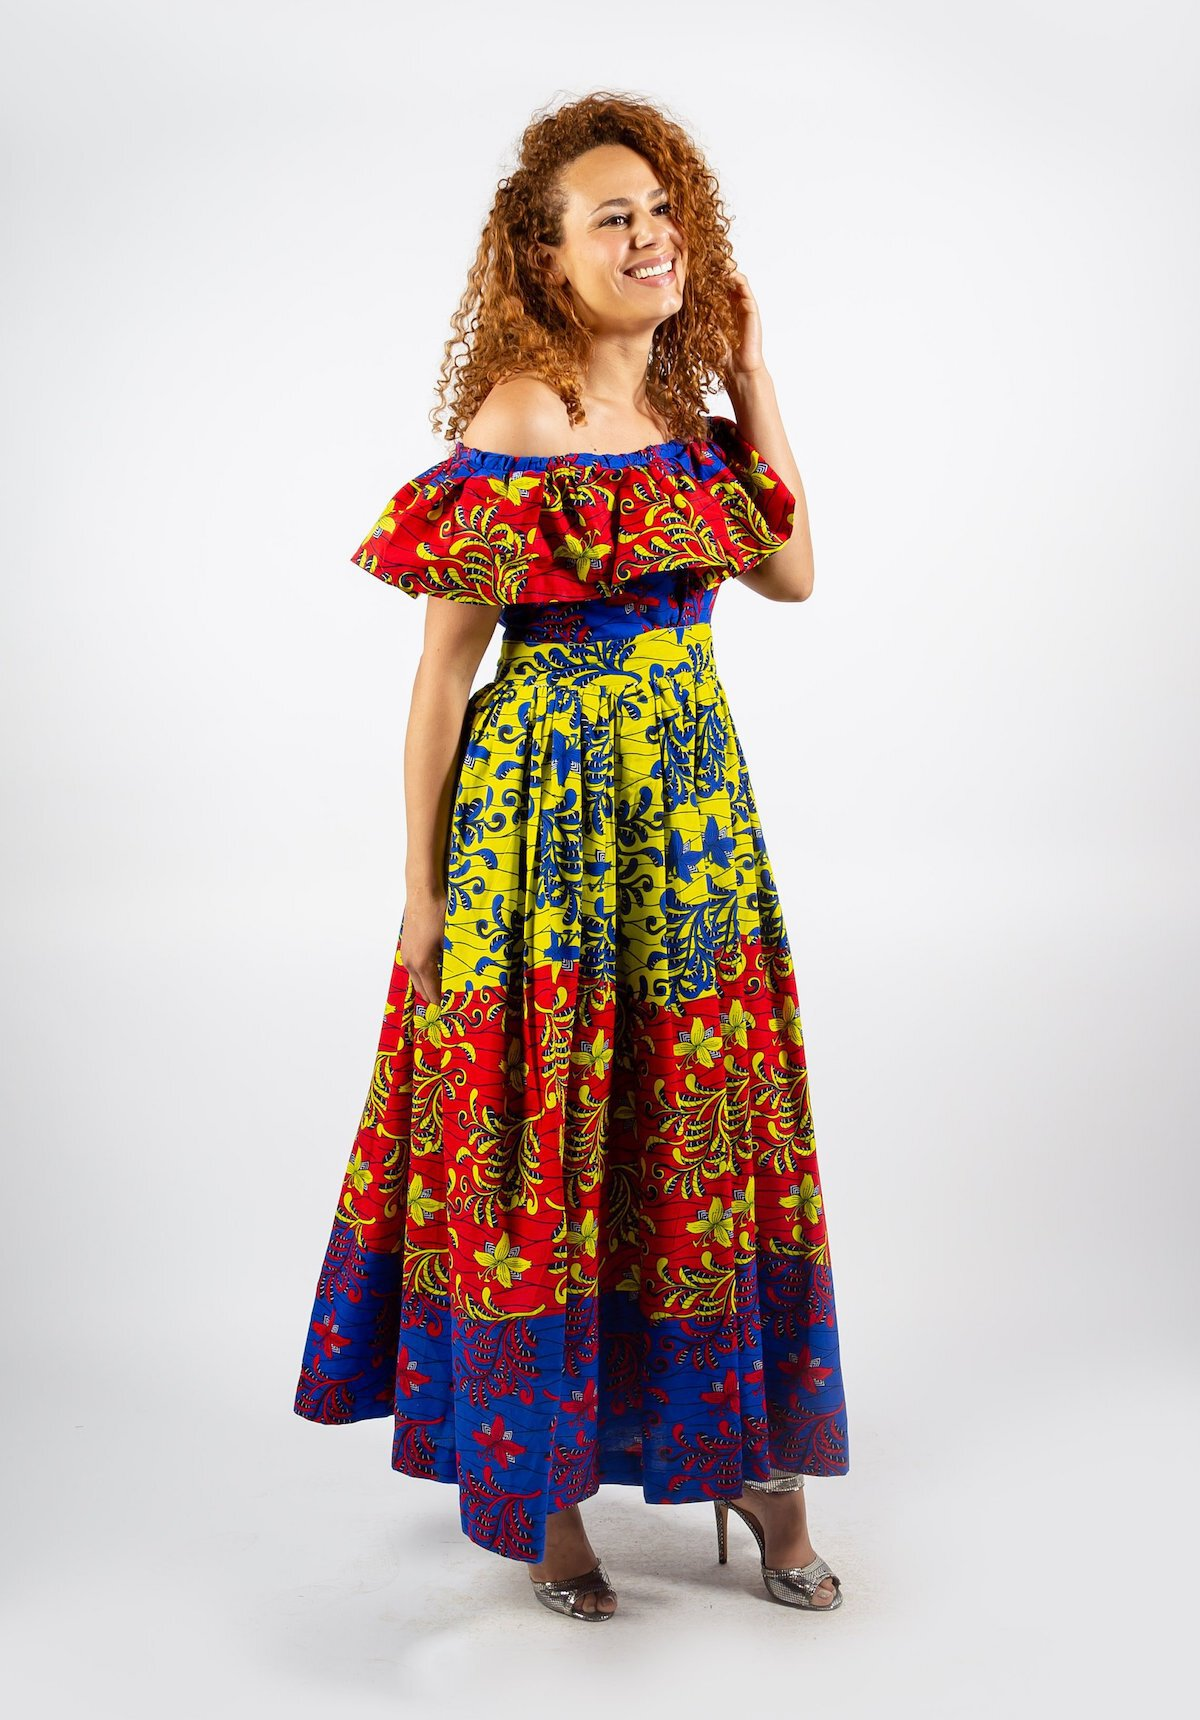 7e6c3c5132cca A roundup of the best African print dresses to add to your wardrobe this  year.